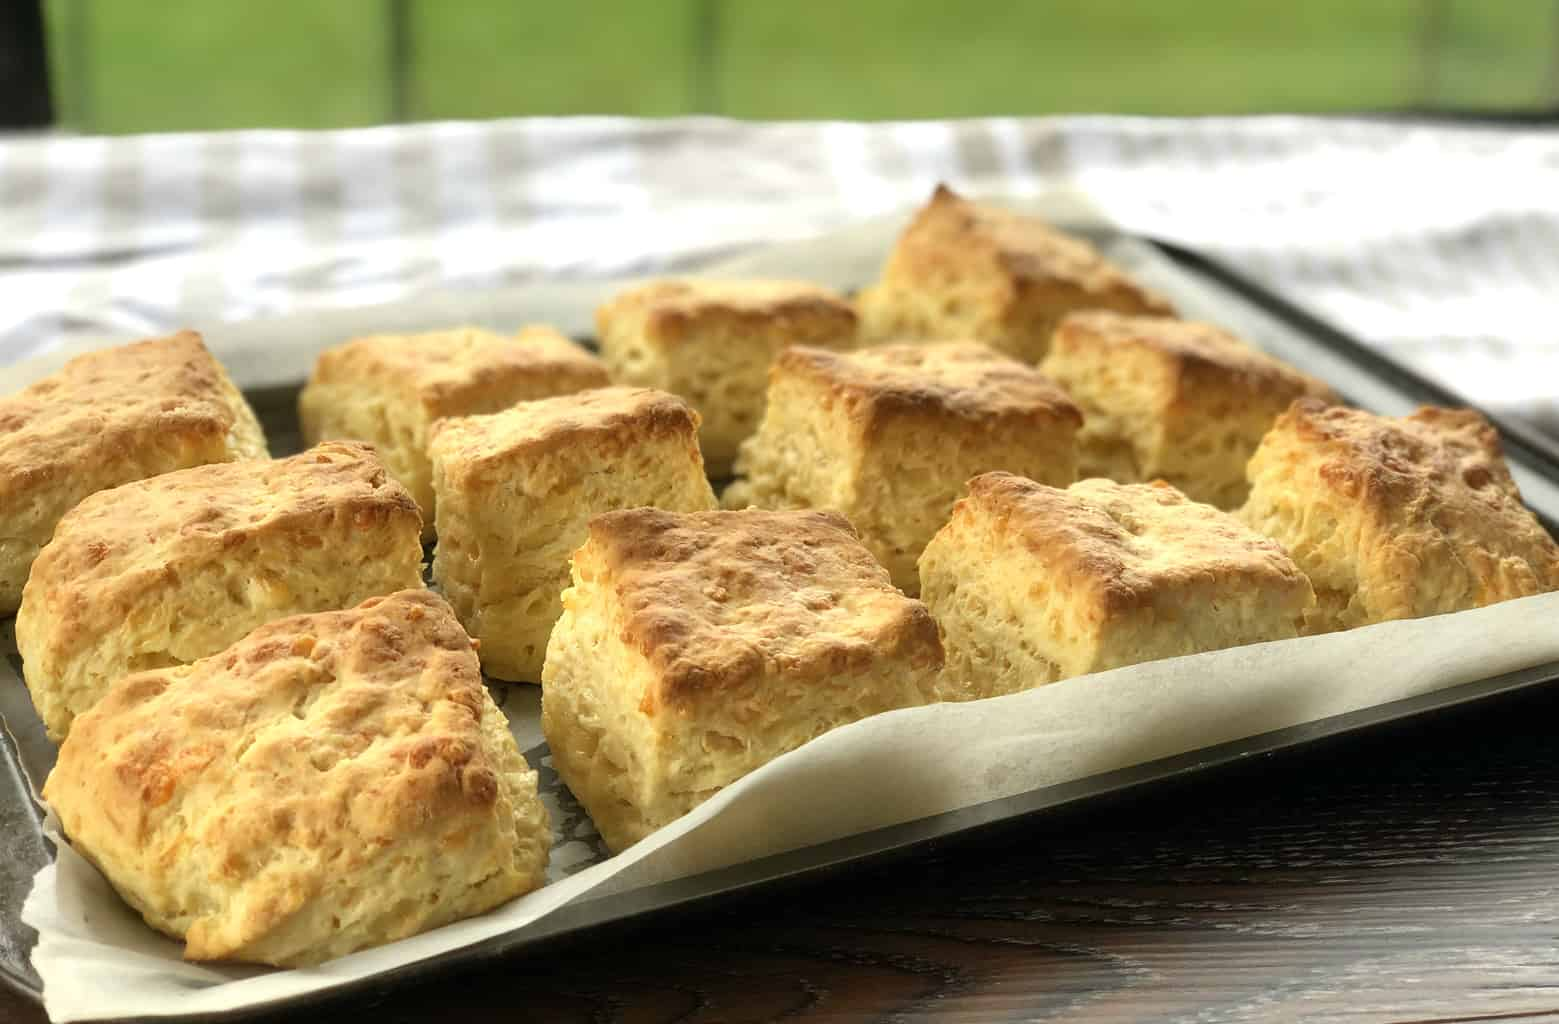 Tray of freshly baked warm cheese scones